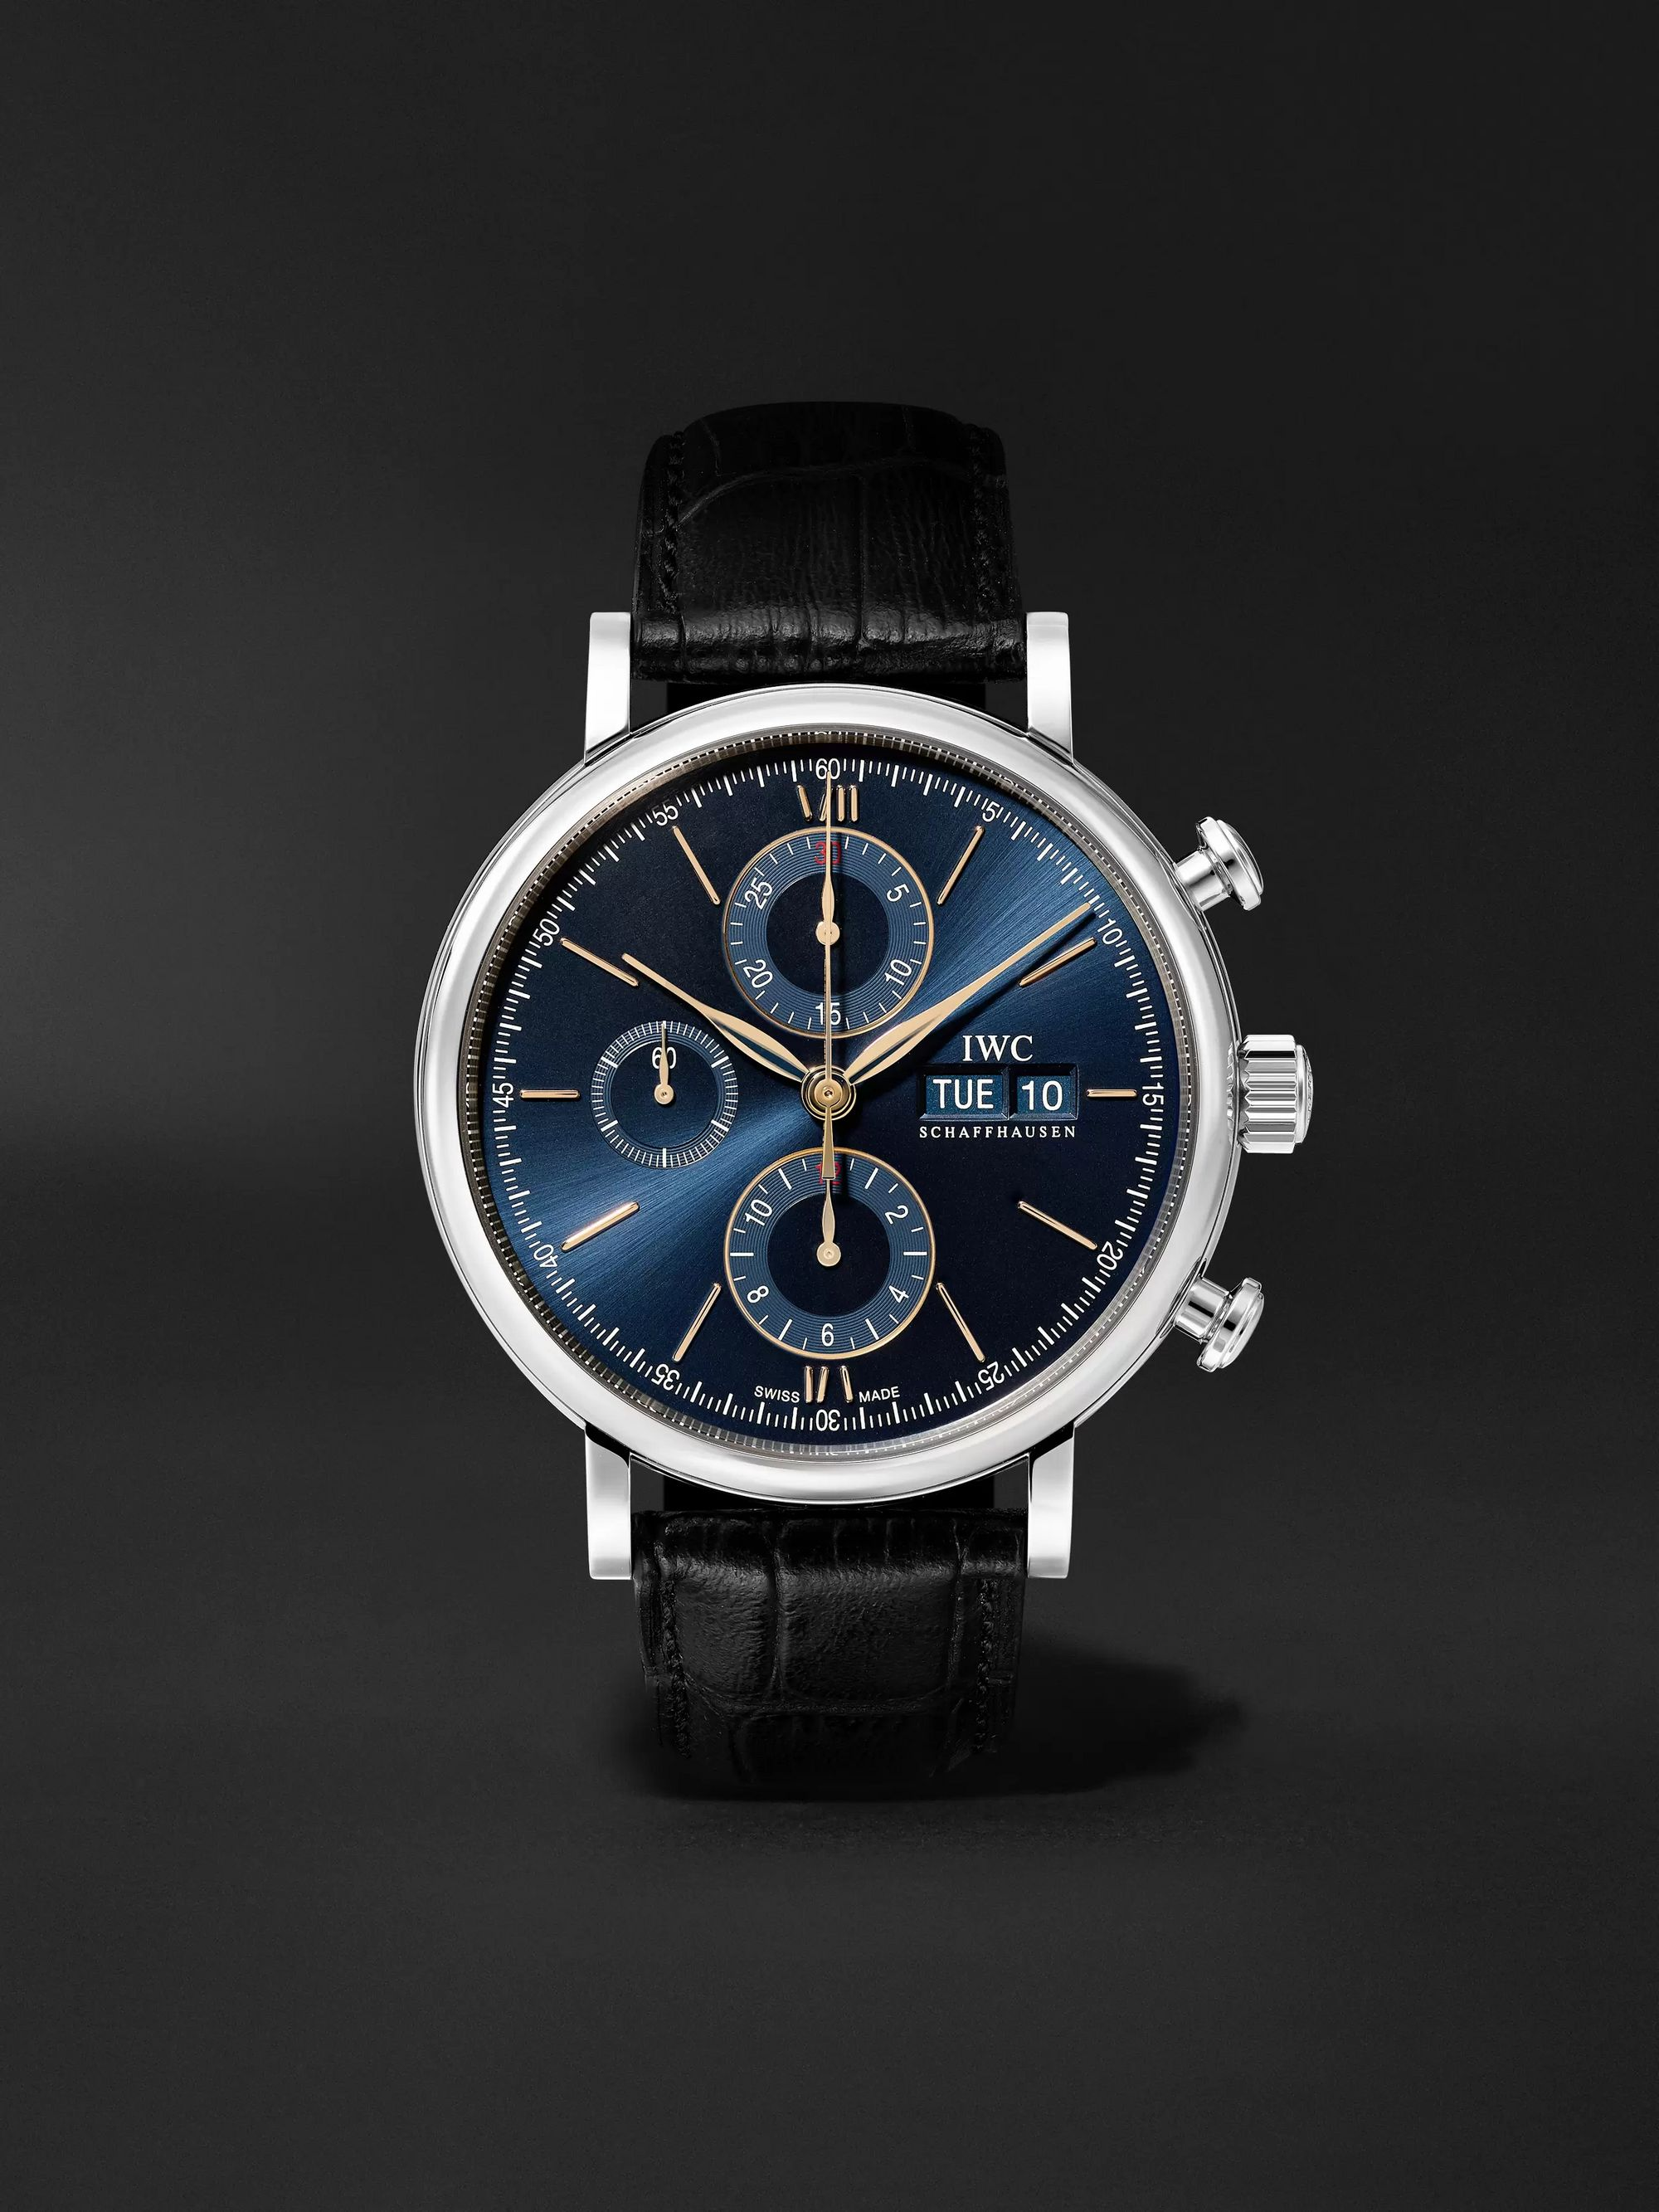 IWC SCHAFFHAUSEN Portofino Automatic Chronograph 42mm Stainless Steel and Alligator Watch